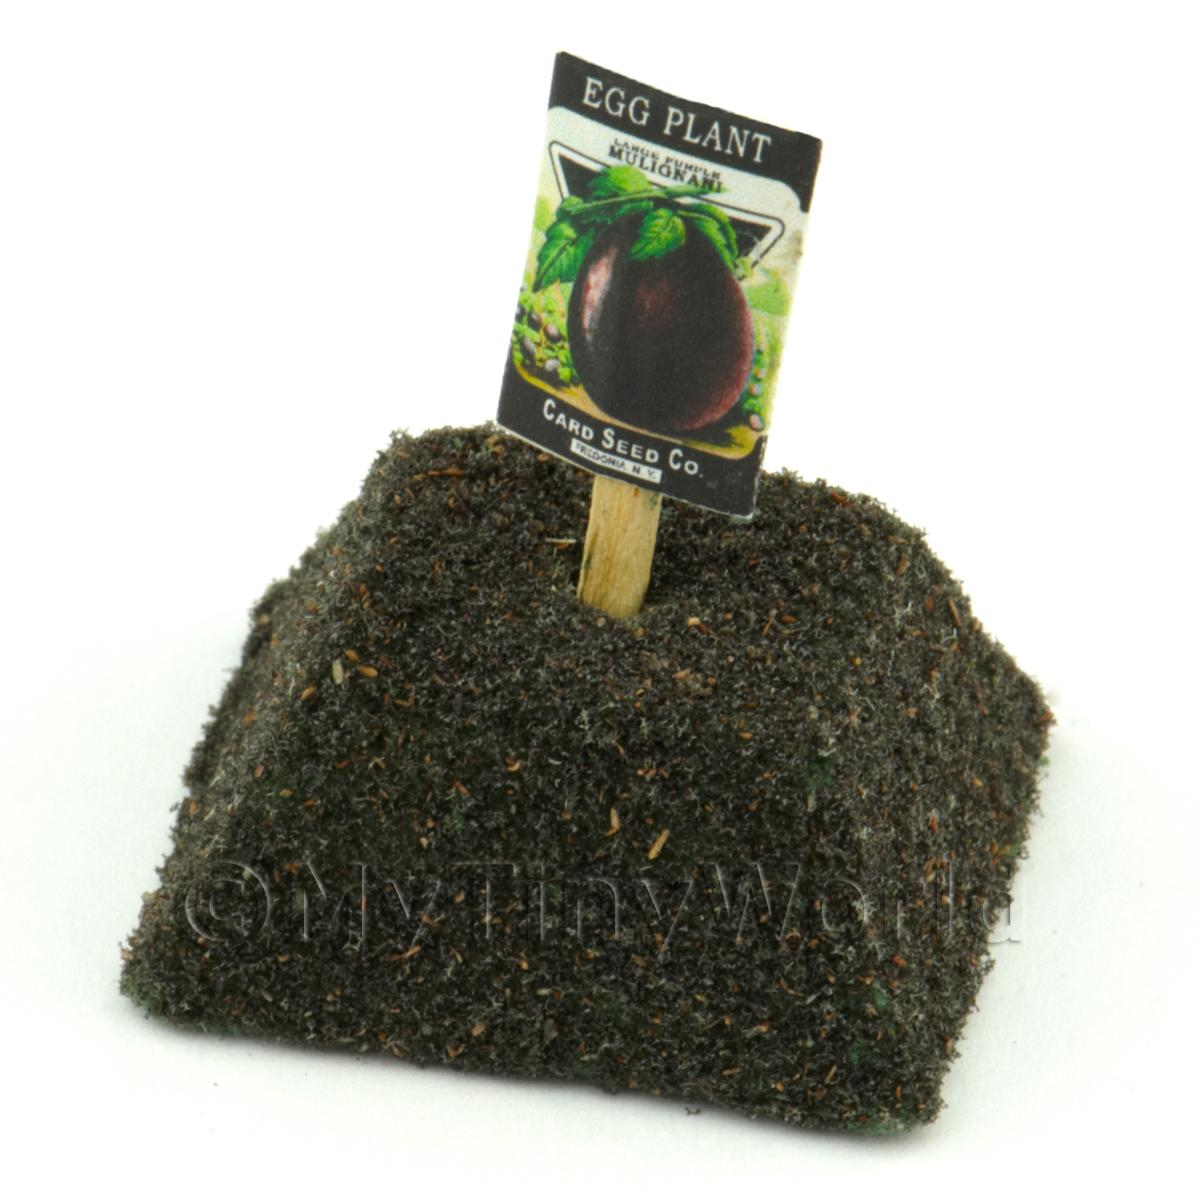 Dolls House Miniaturei Egg Plant / Aubergine Seed Packet With A Stick